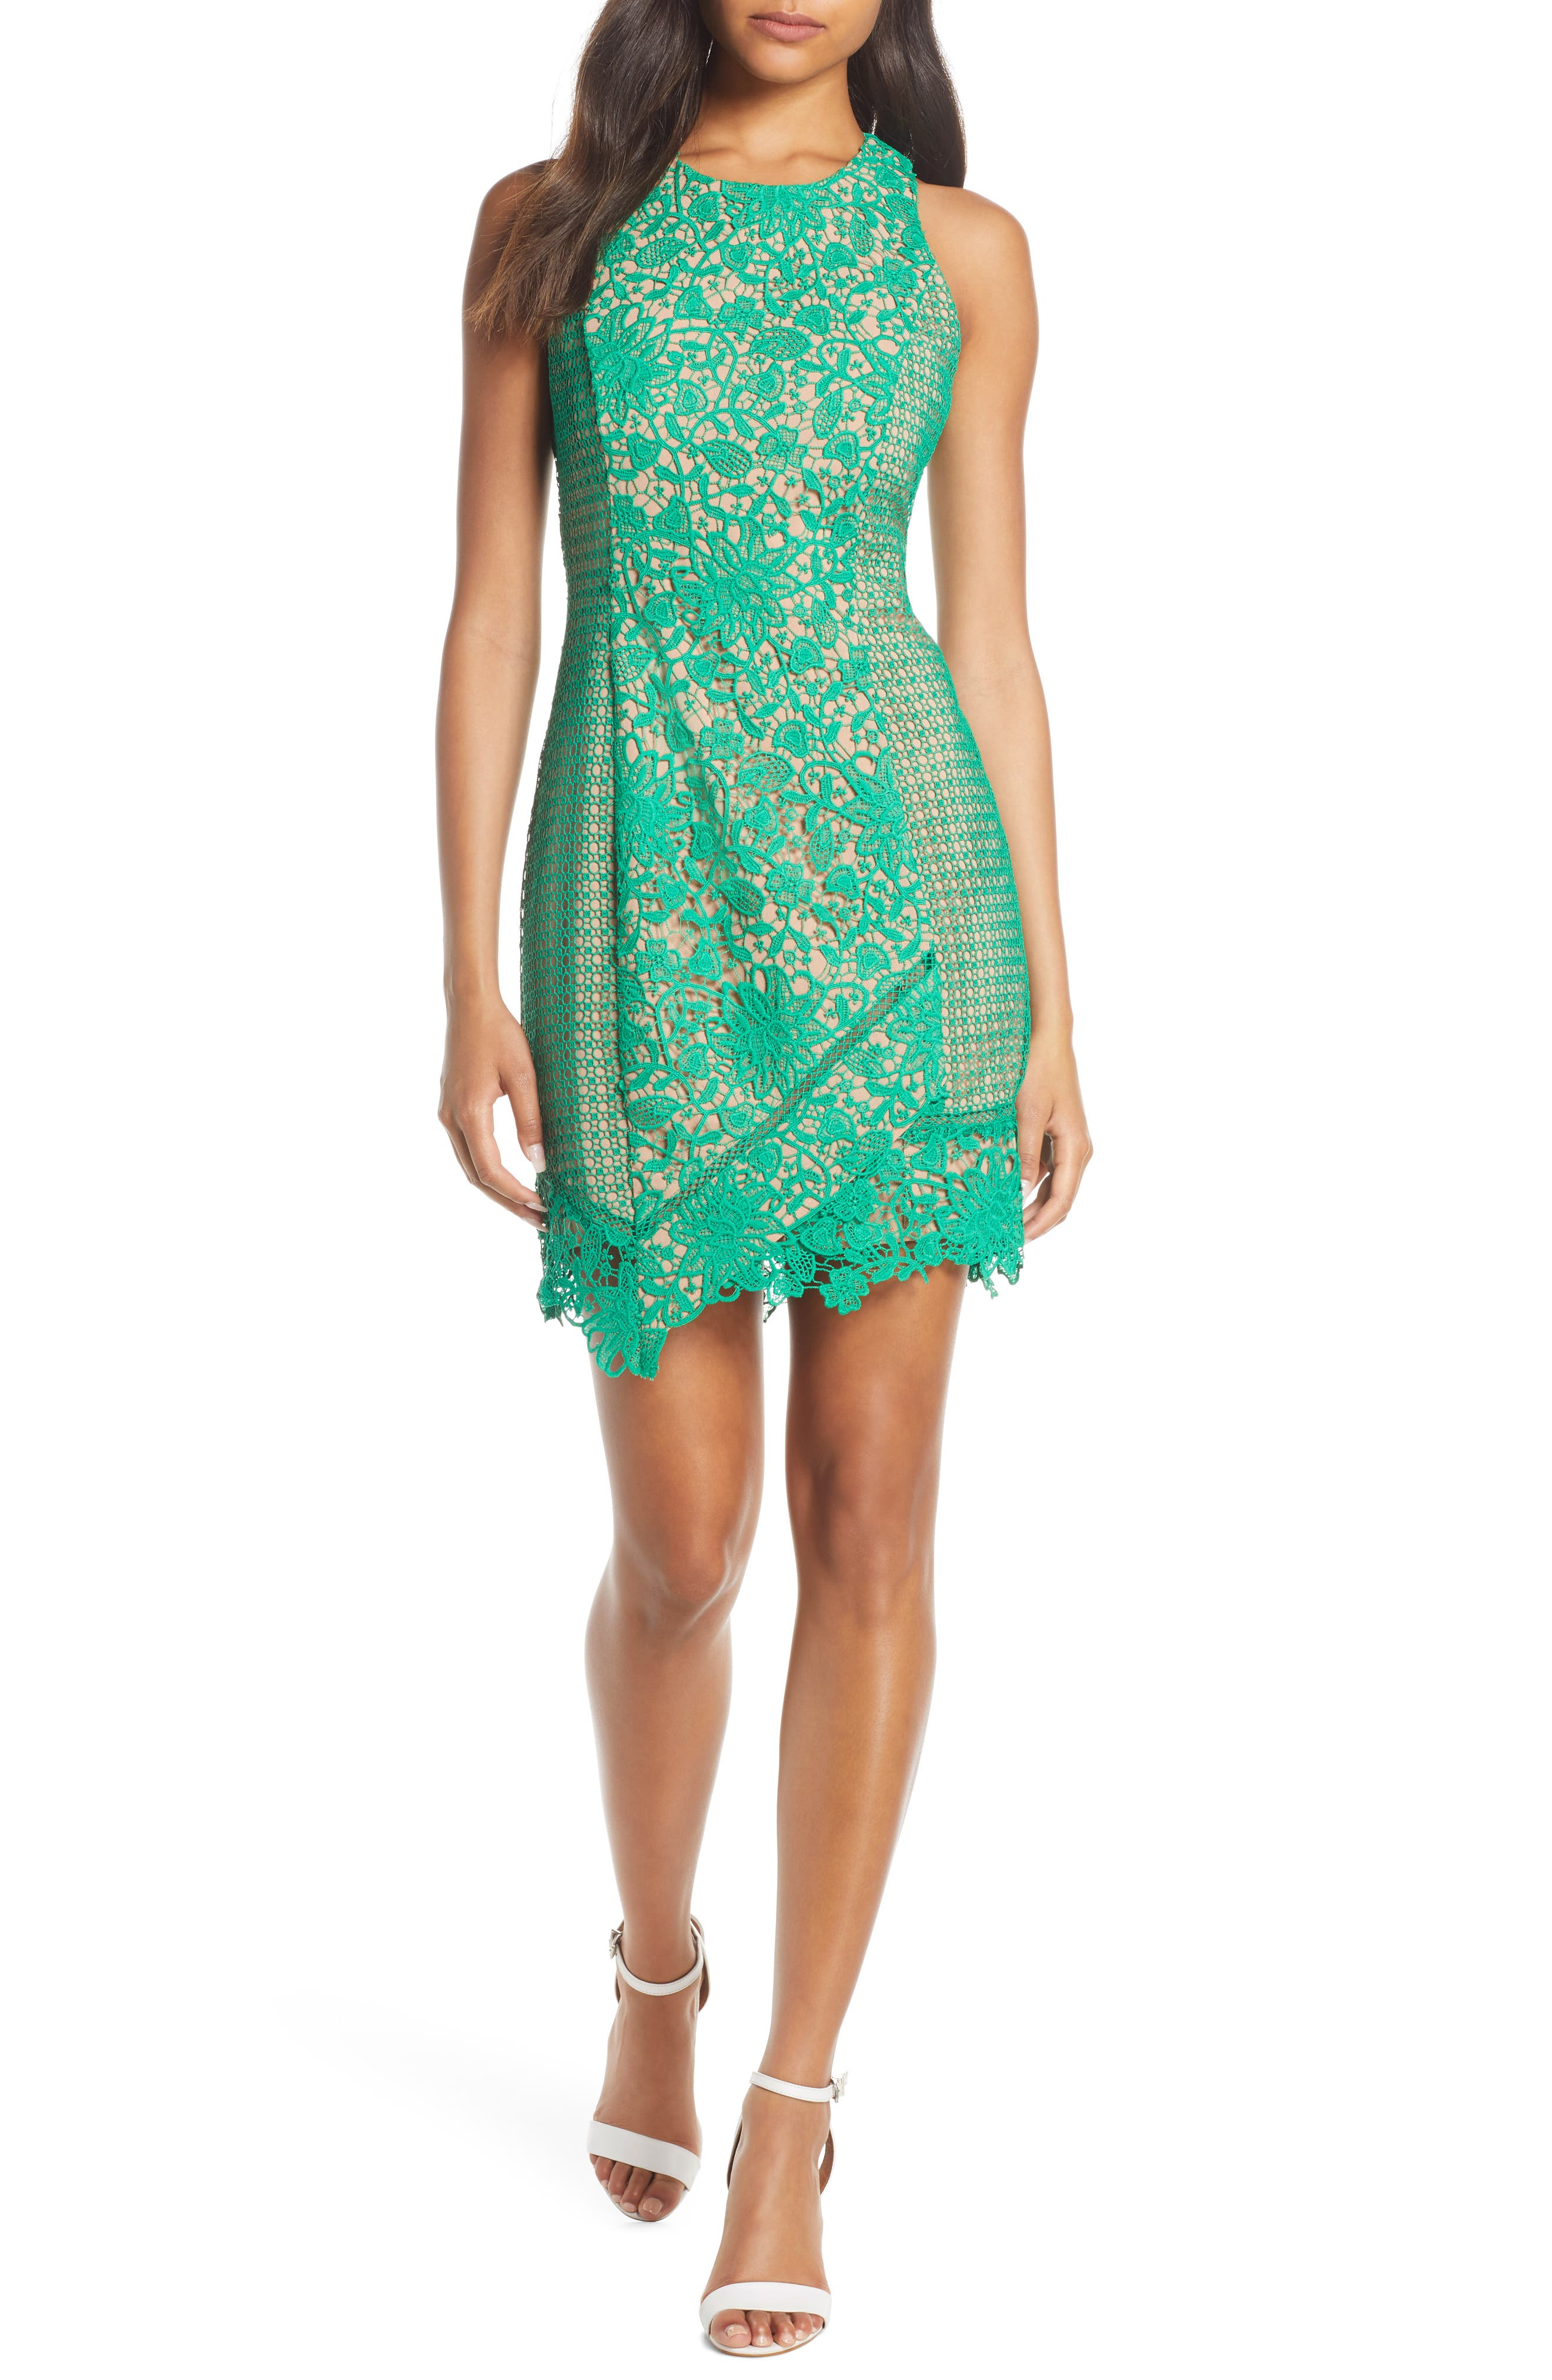 Adelyn Rae Alessia Lace Cocktail Sheath Dress, Green